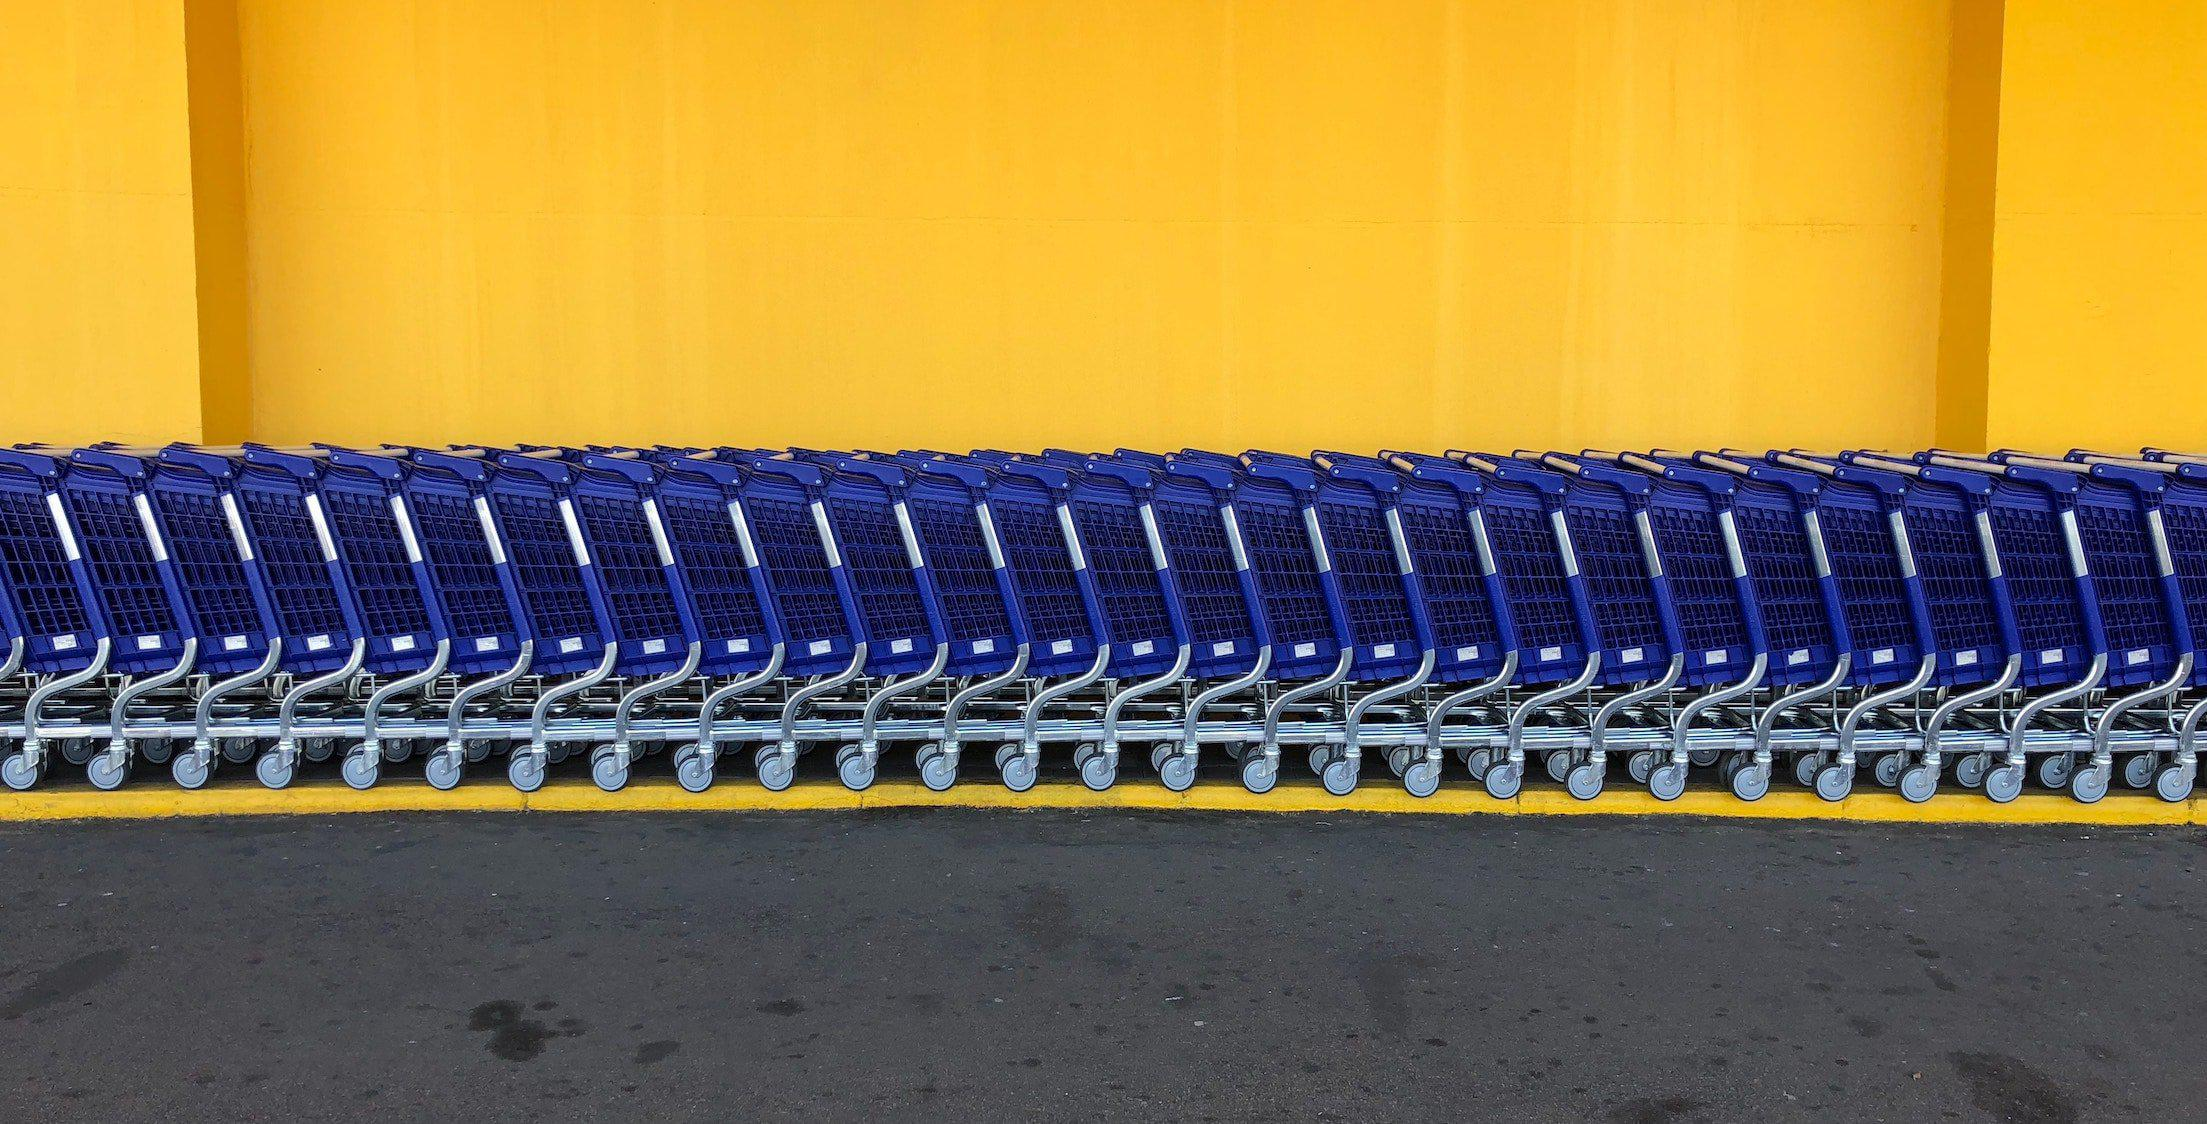 8 things you didn't know you could get at Sam's Club